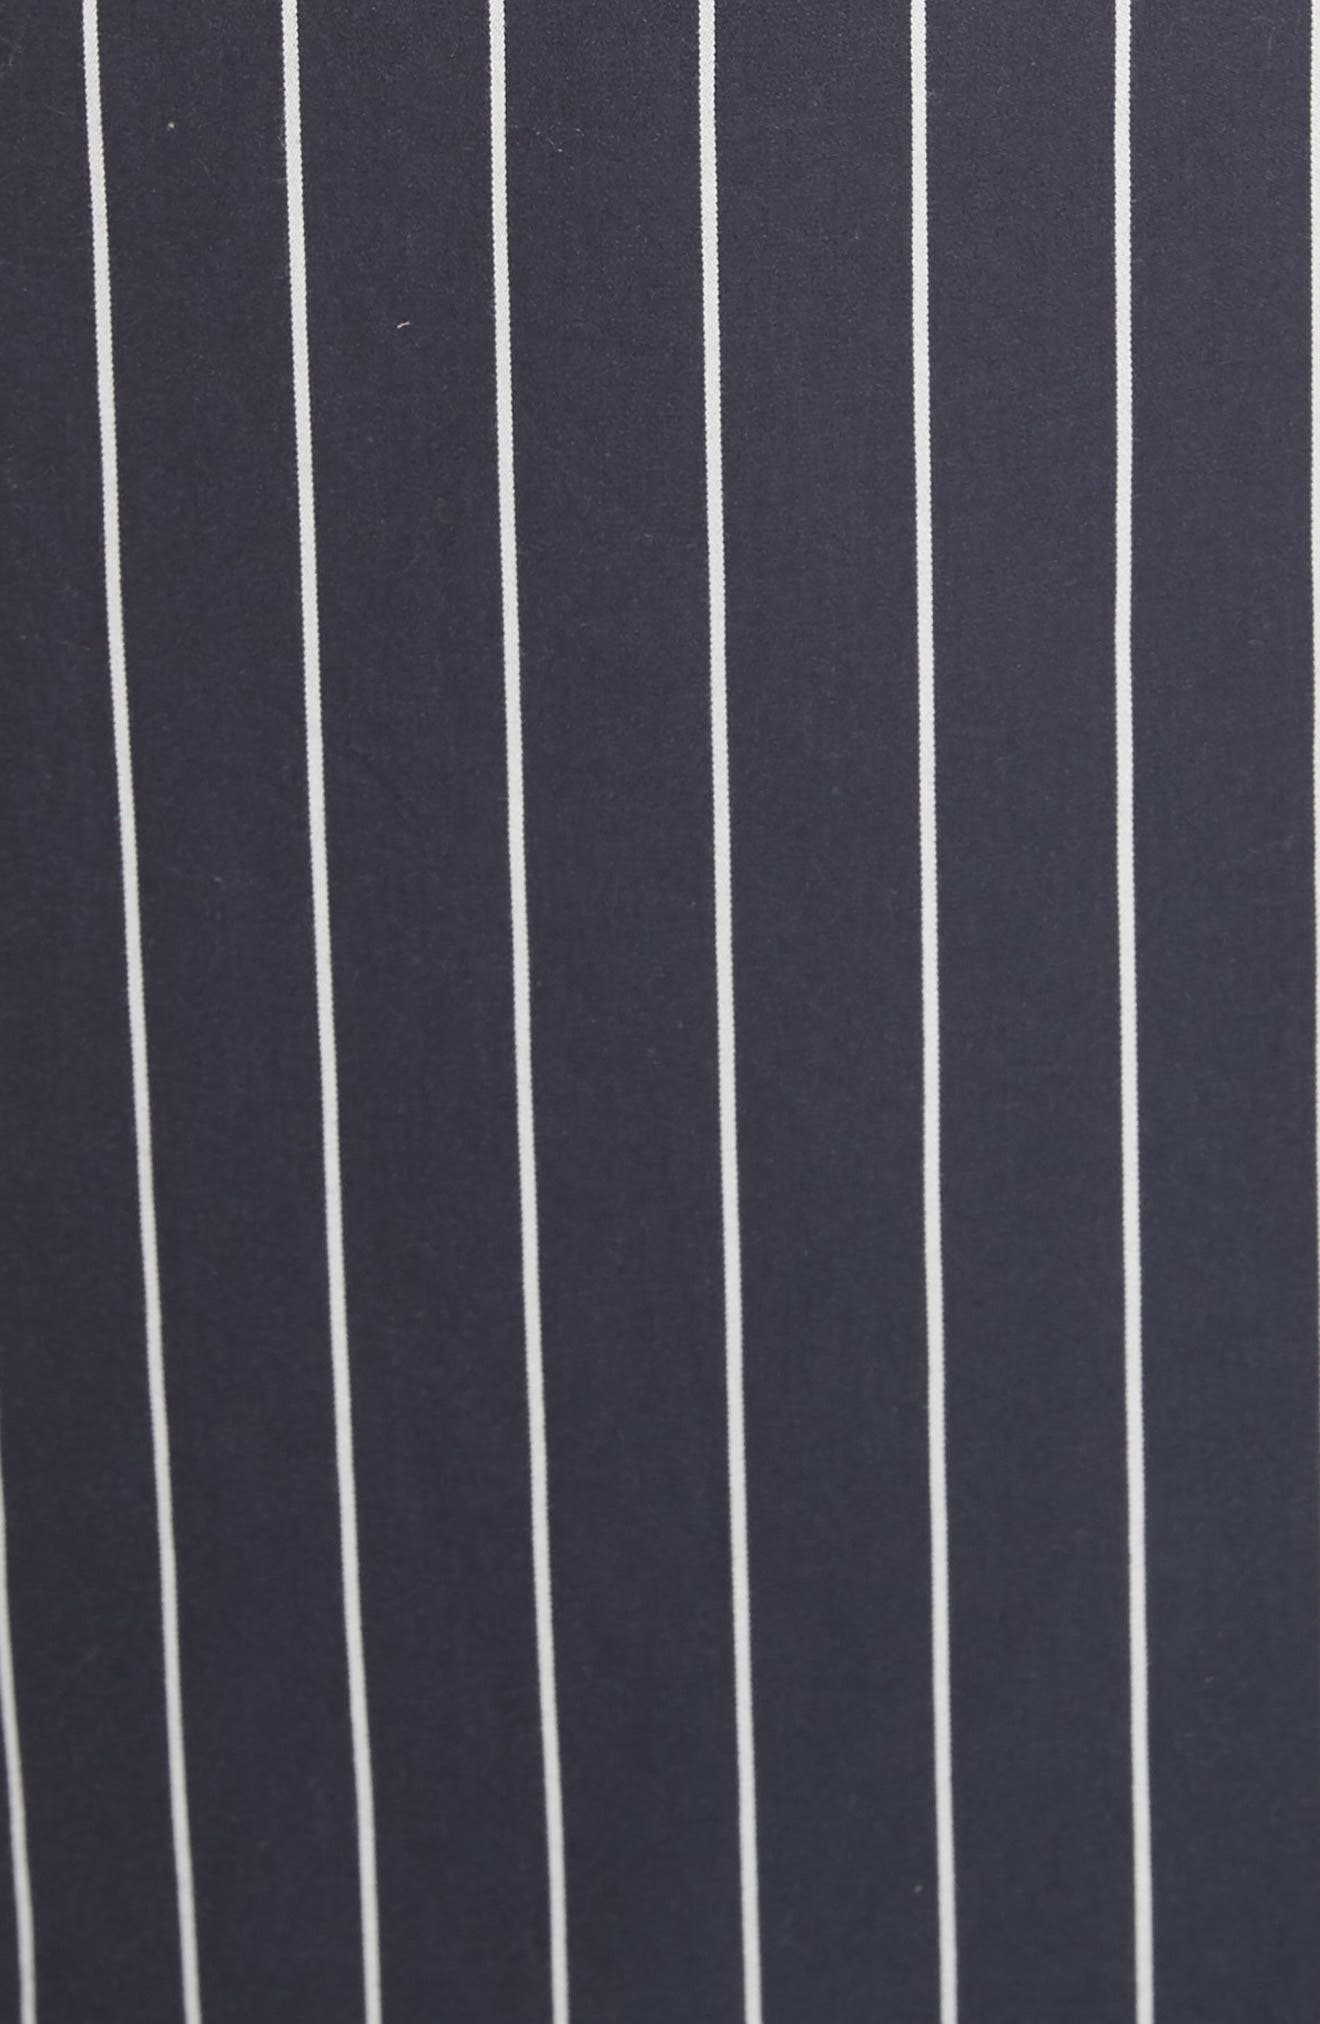 Stripe Sateen Skirt,                             Alternate thumbnail 6, color,                             Navy Multi